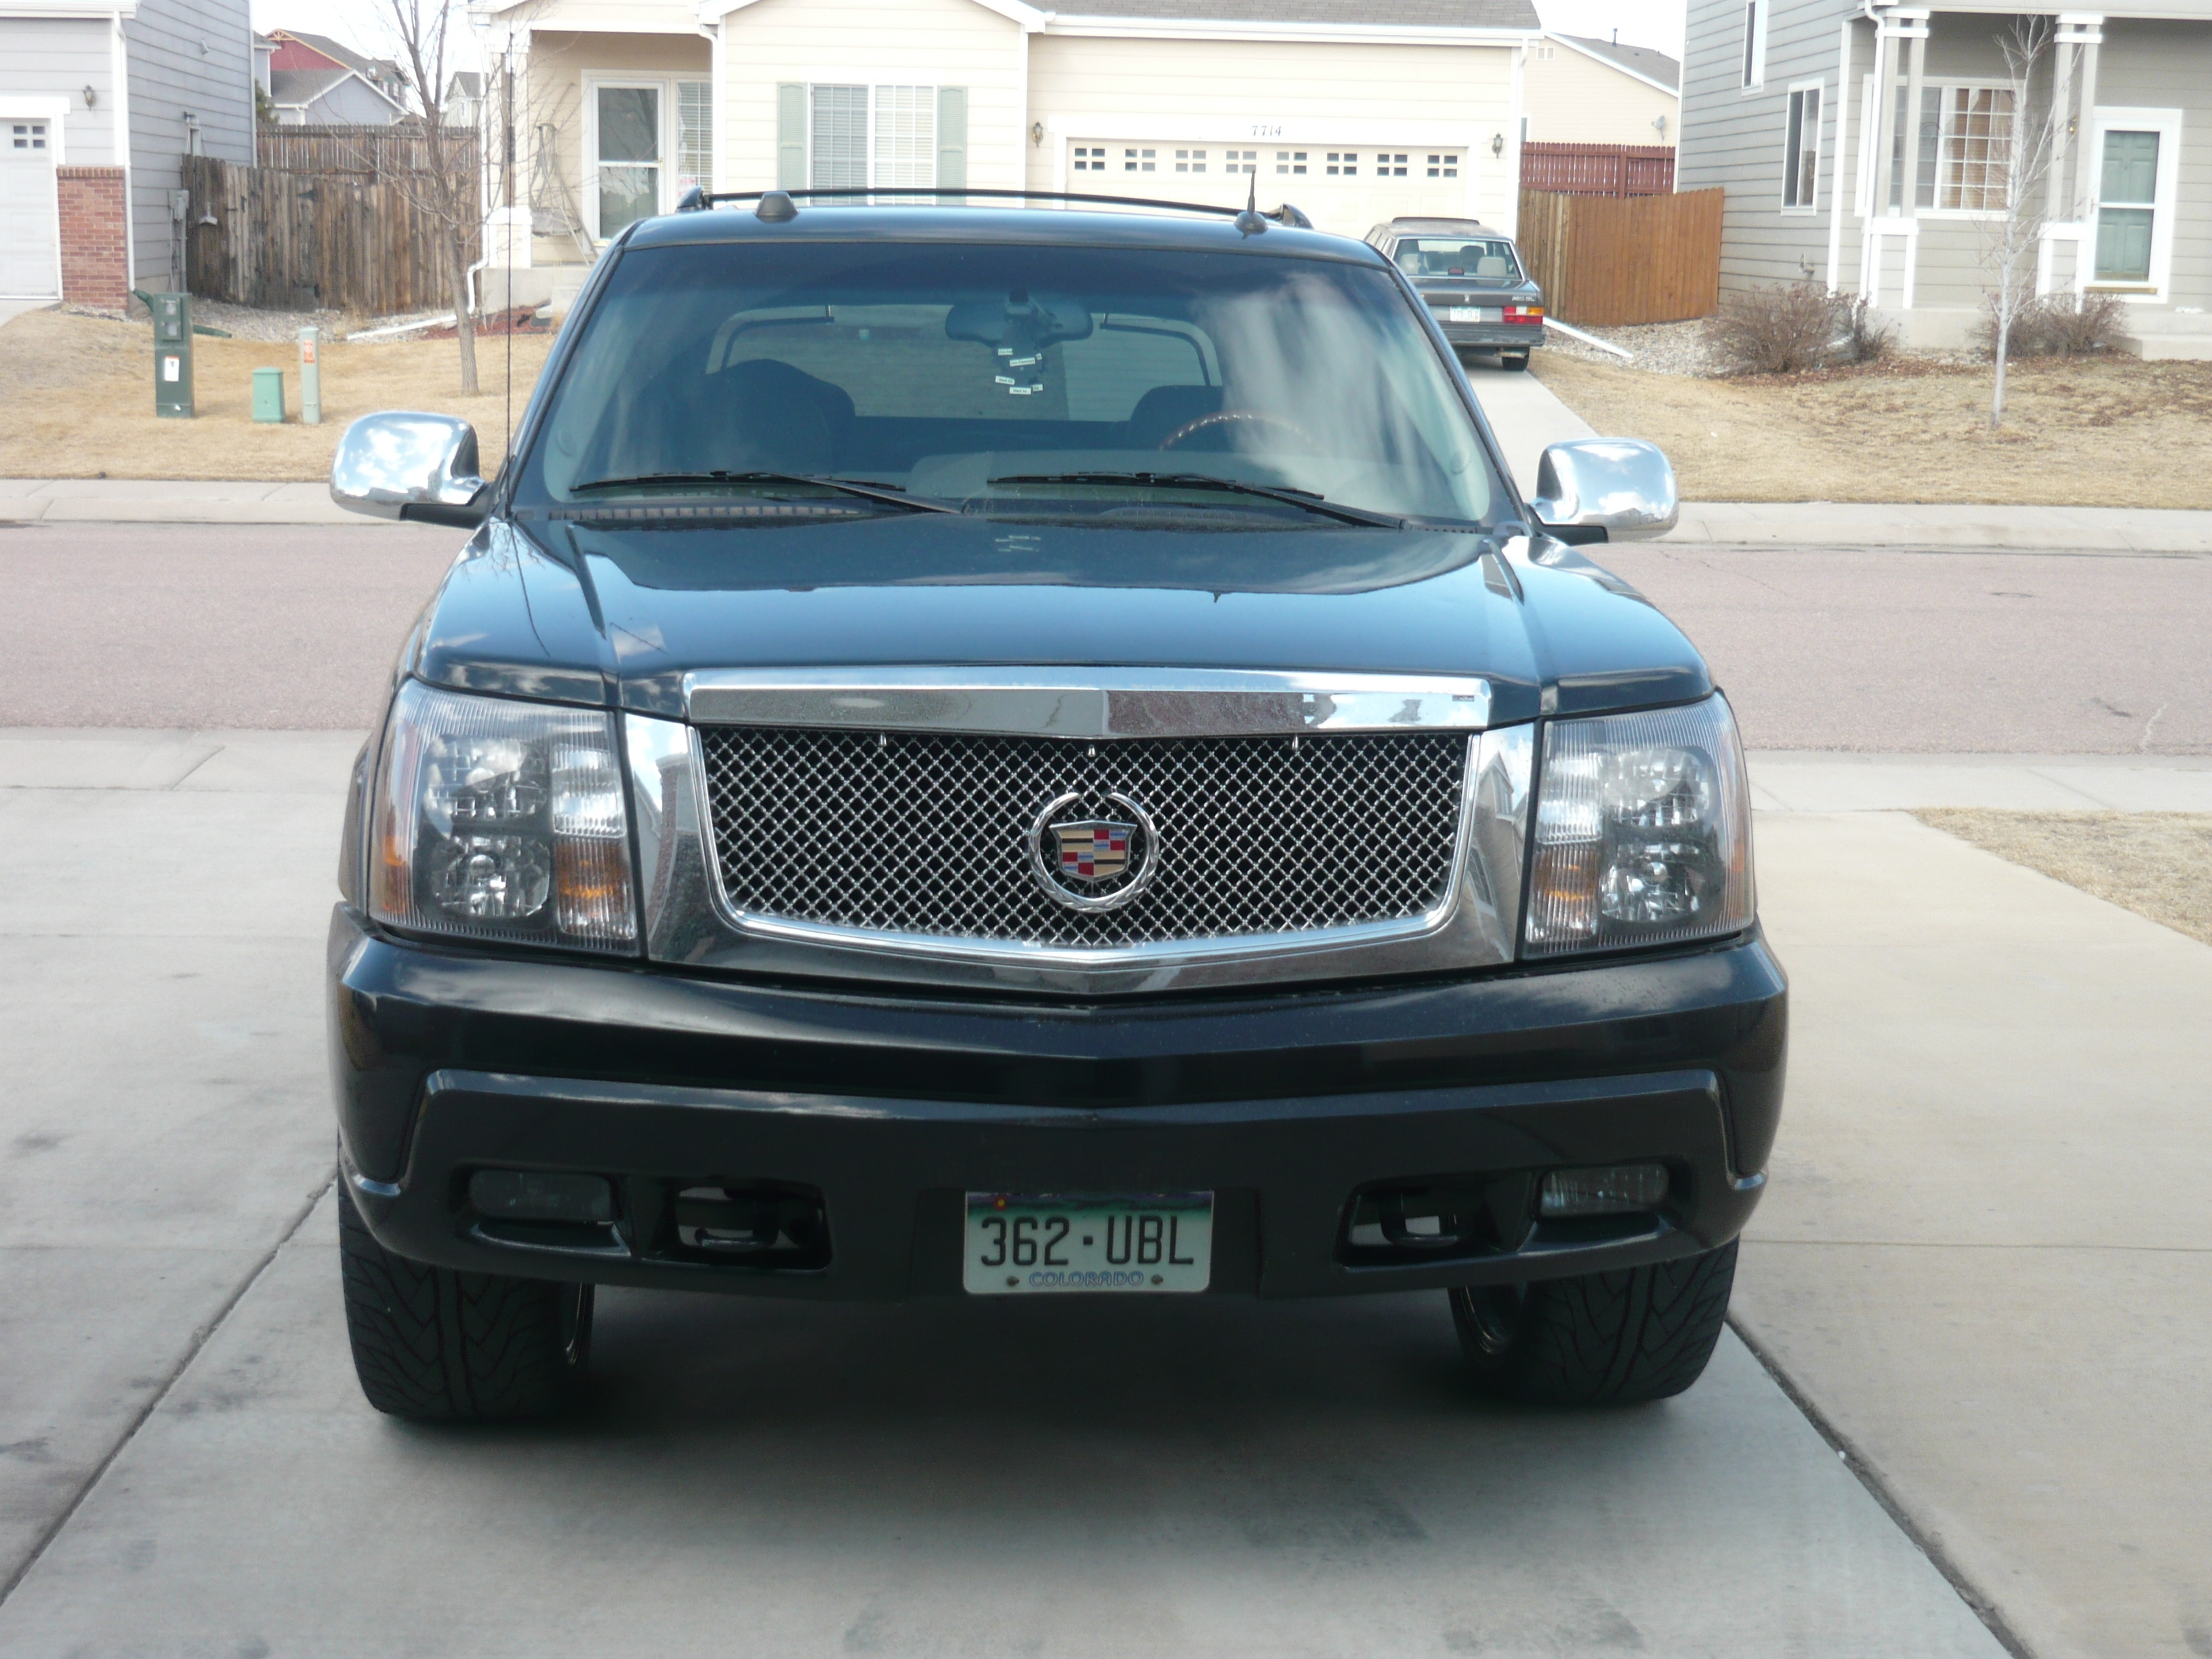 20+ 2004 Escalade Headlights